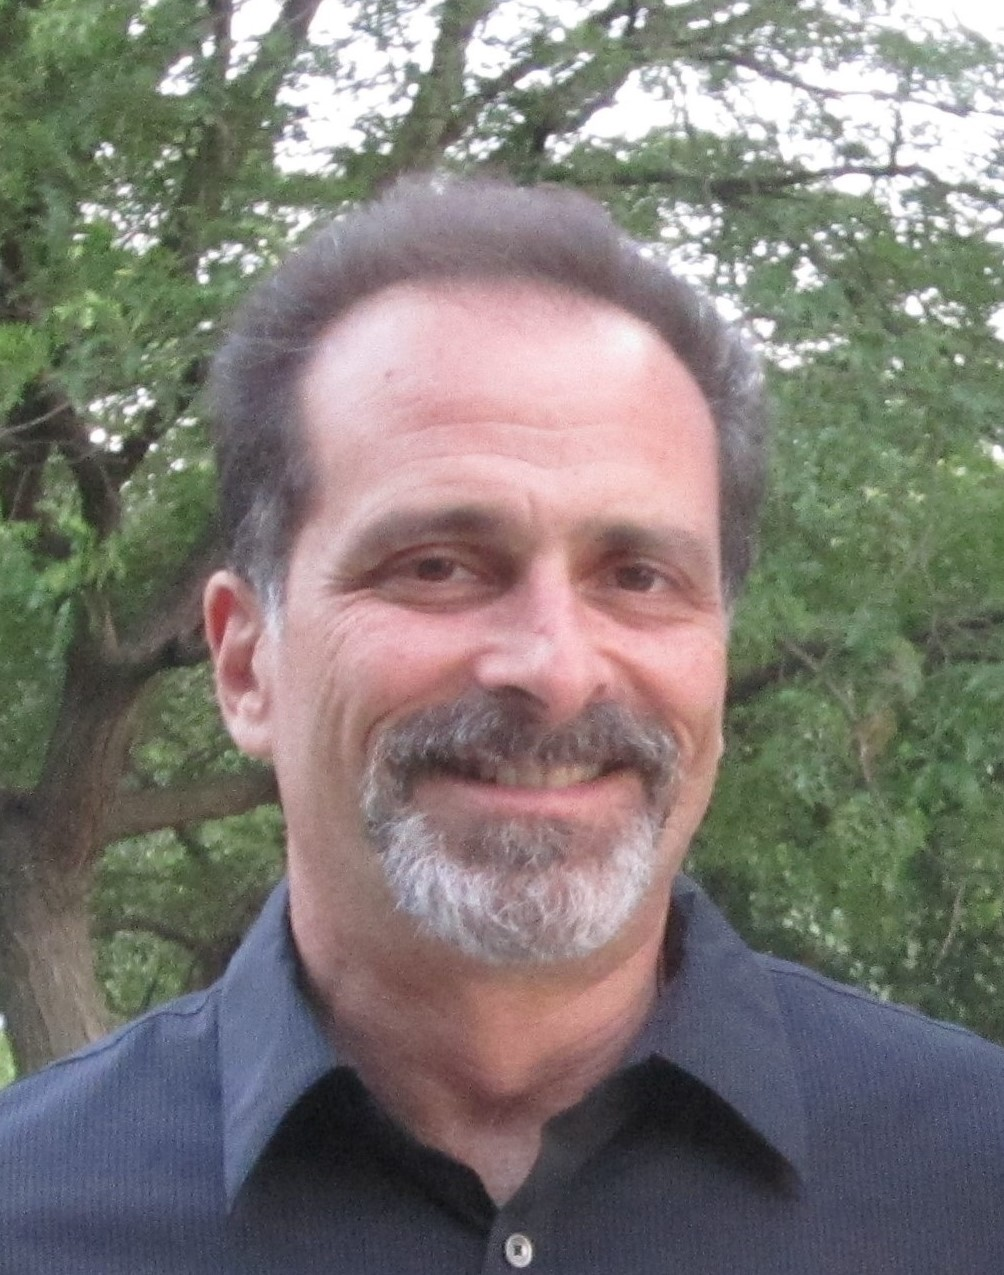 Headshot of Mitch Tyson, former CEO, entrepreneur and climate advocate